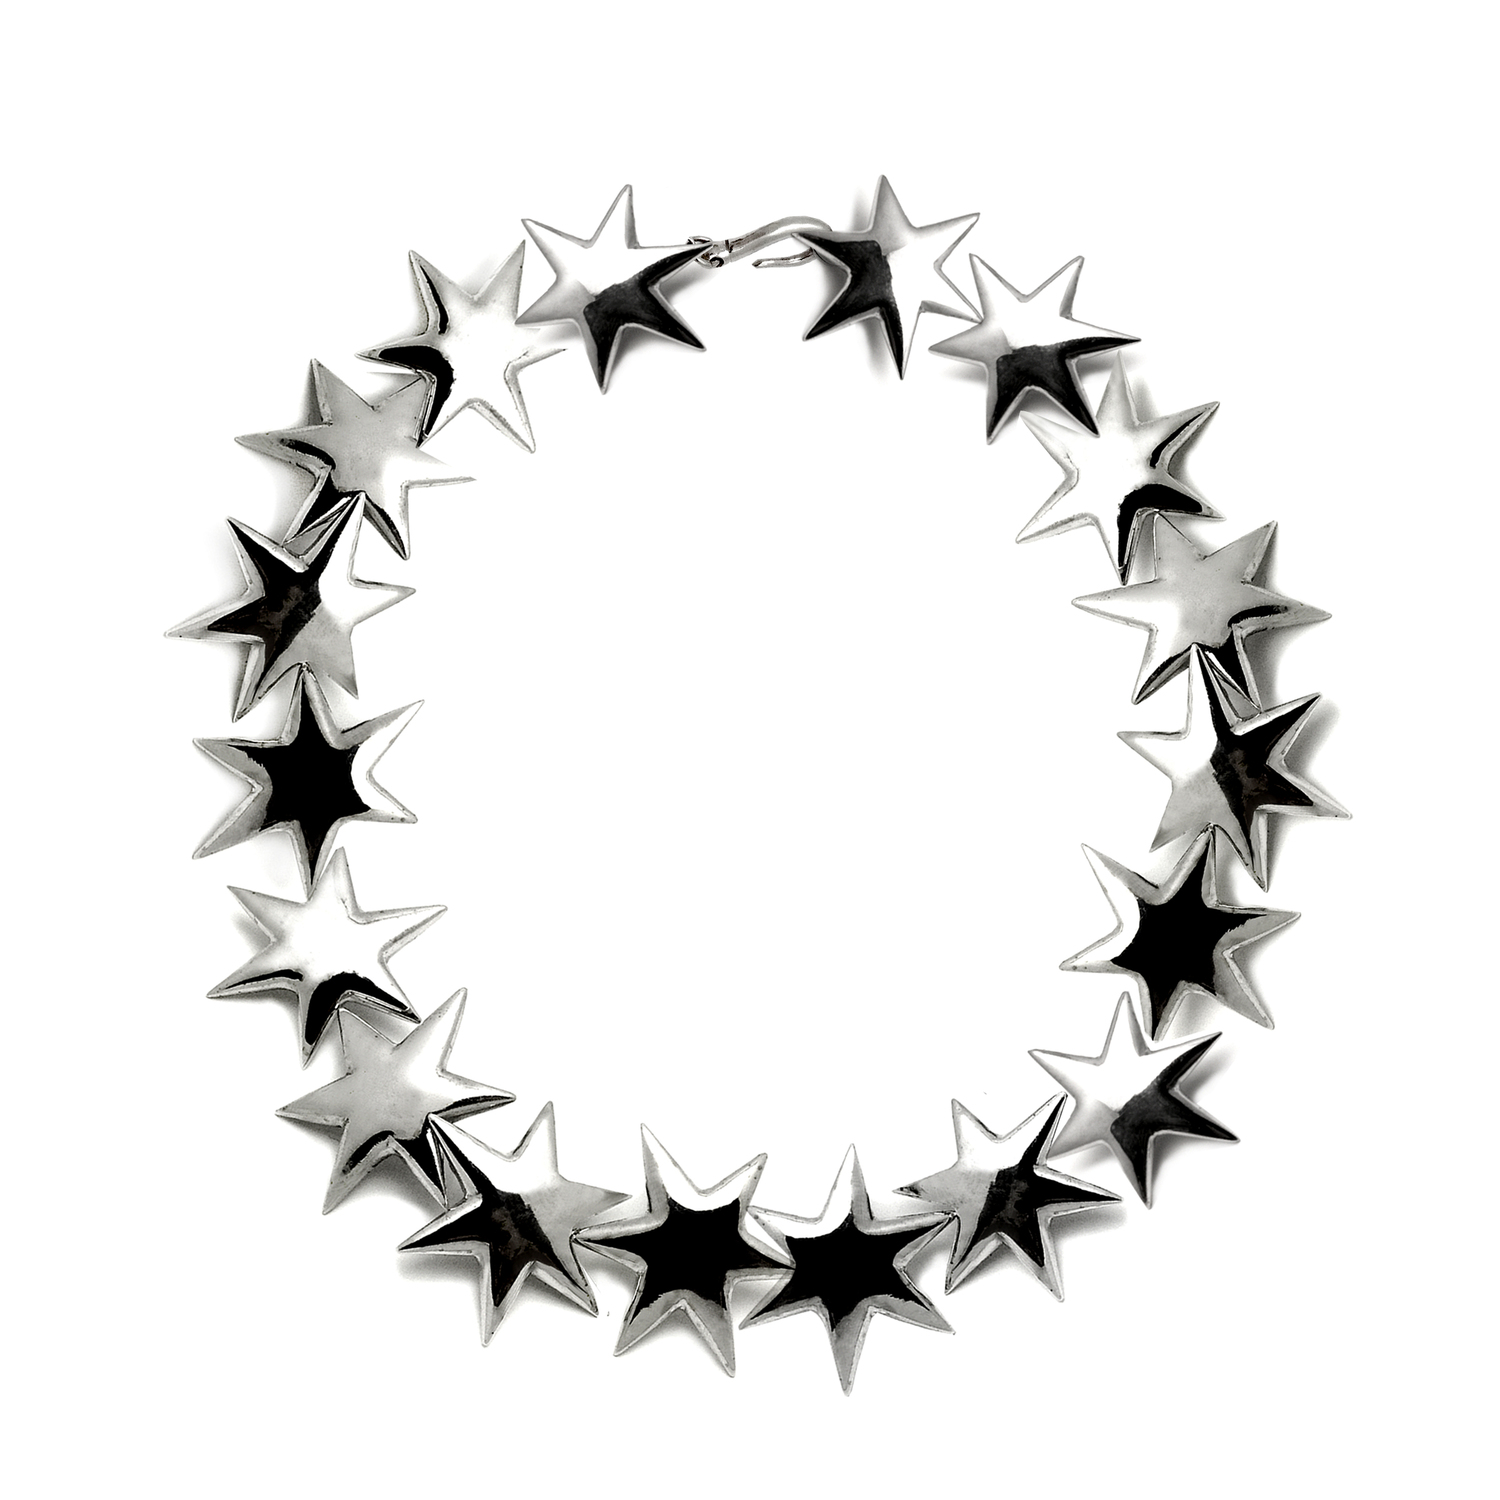 6 POINTED STAR NECKLACE